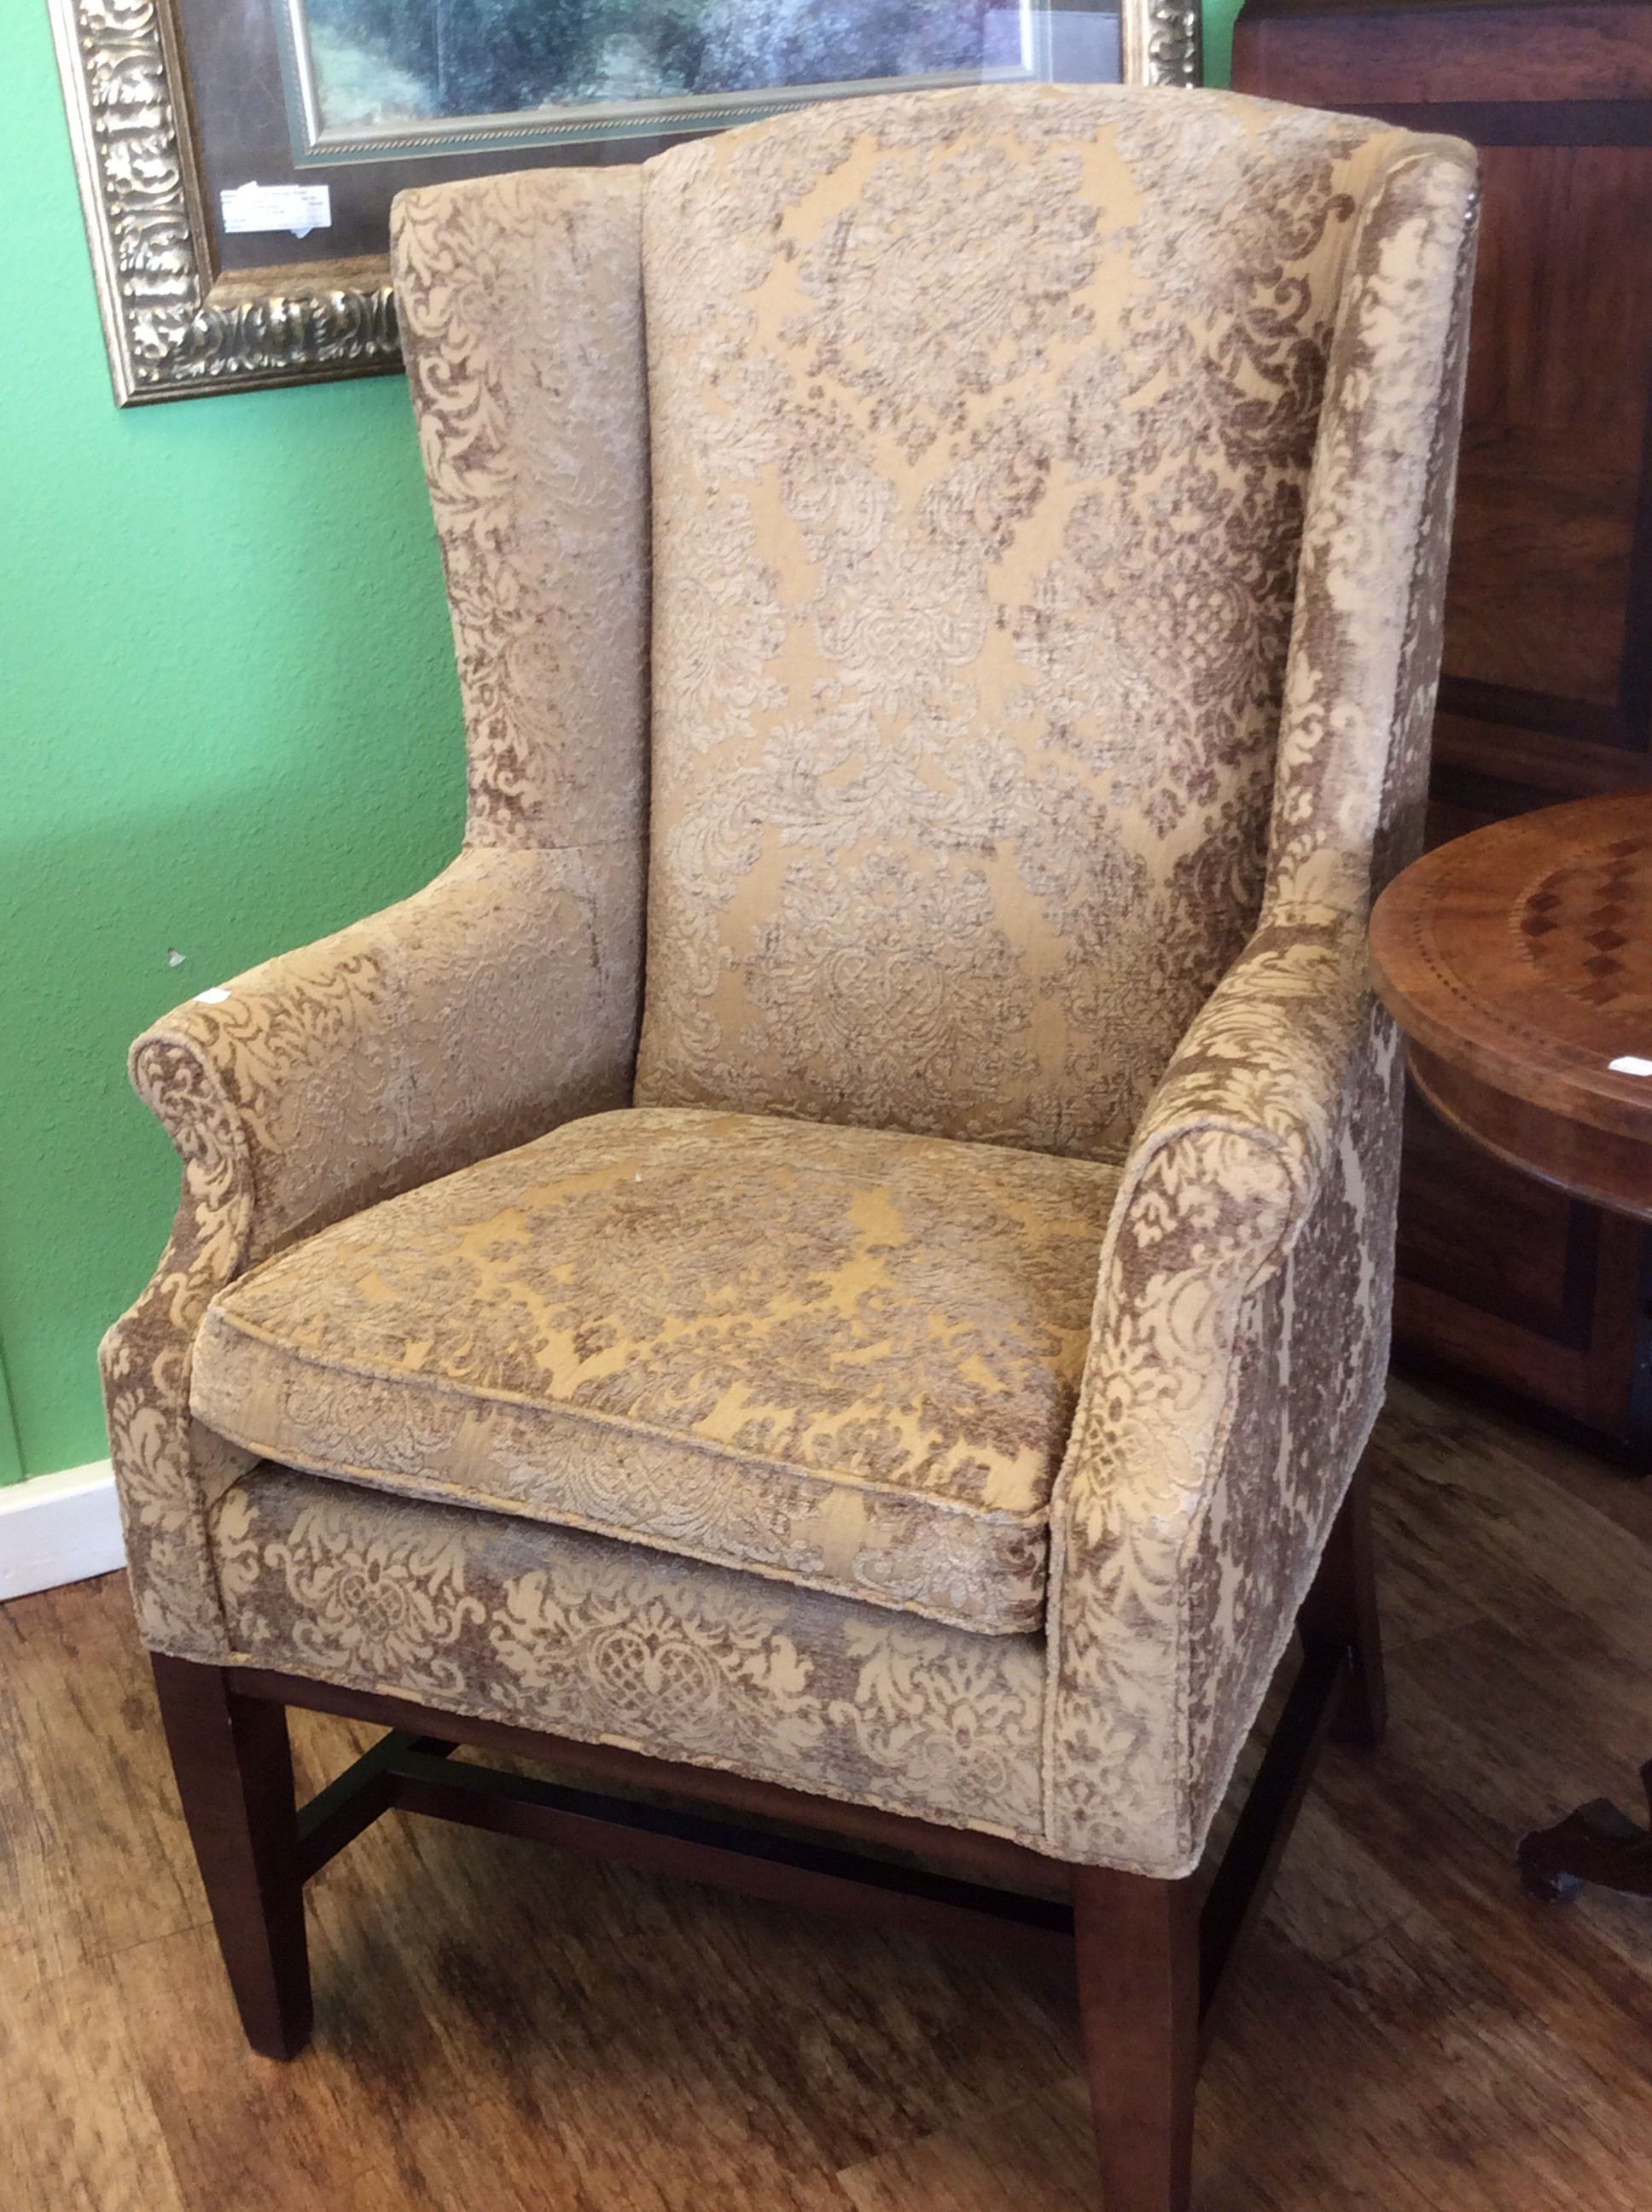 Warm the look of any room with a wingback chair from The Martha Stewart Signature Collection by Bernhardt Furniture. Traditional in style, it features a 2-toned gold Damask upholstery with a nailhead trim. Good condition.